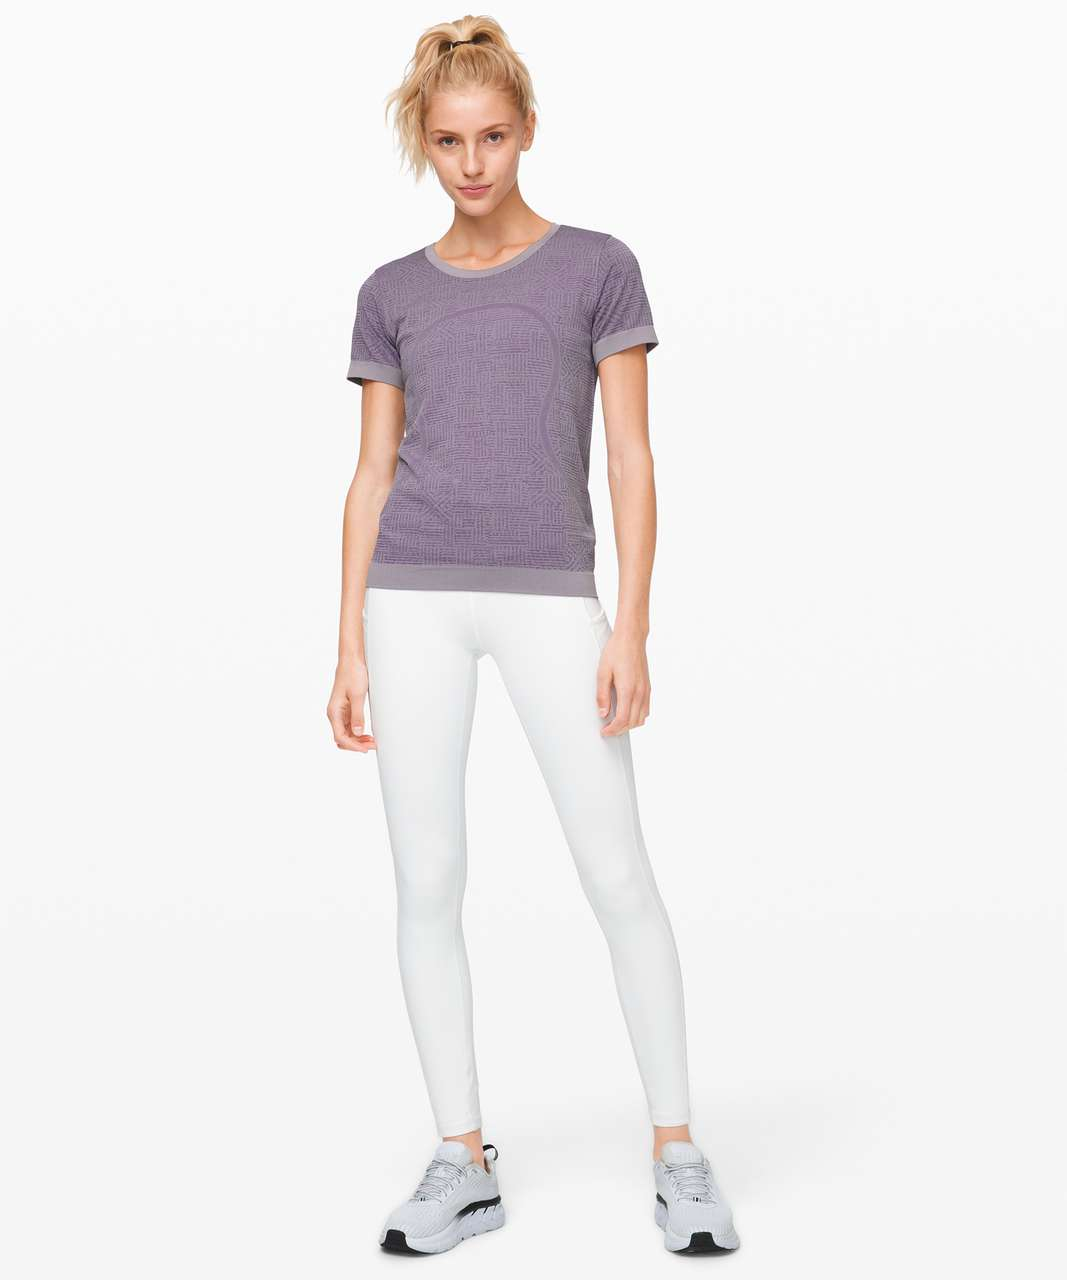 Lululemon Swiftly Relaxed Short Sleeve - Purple Quartz / Violet Grey